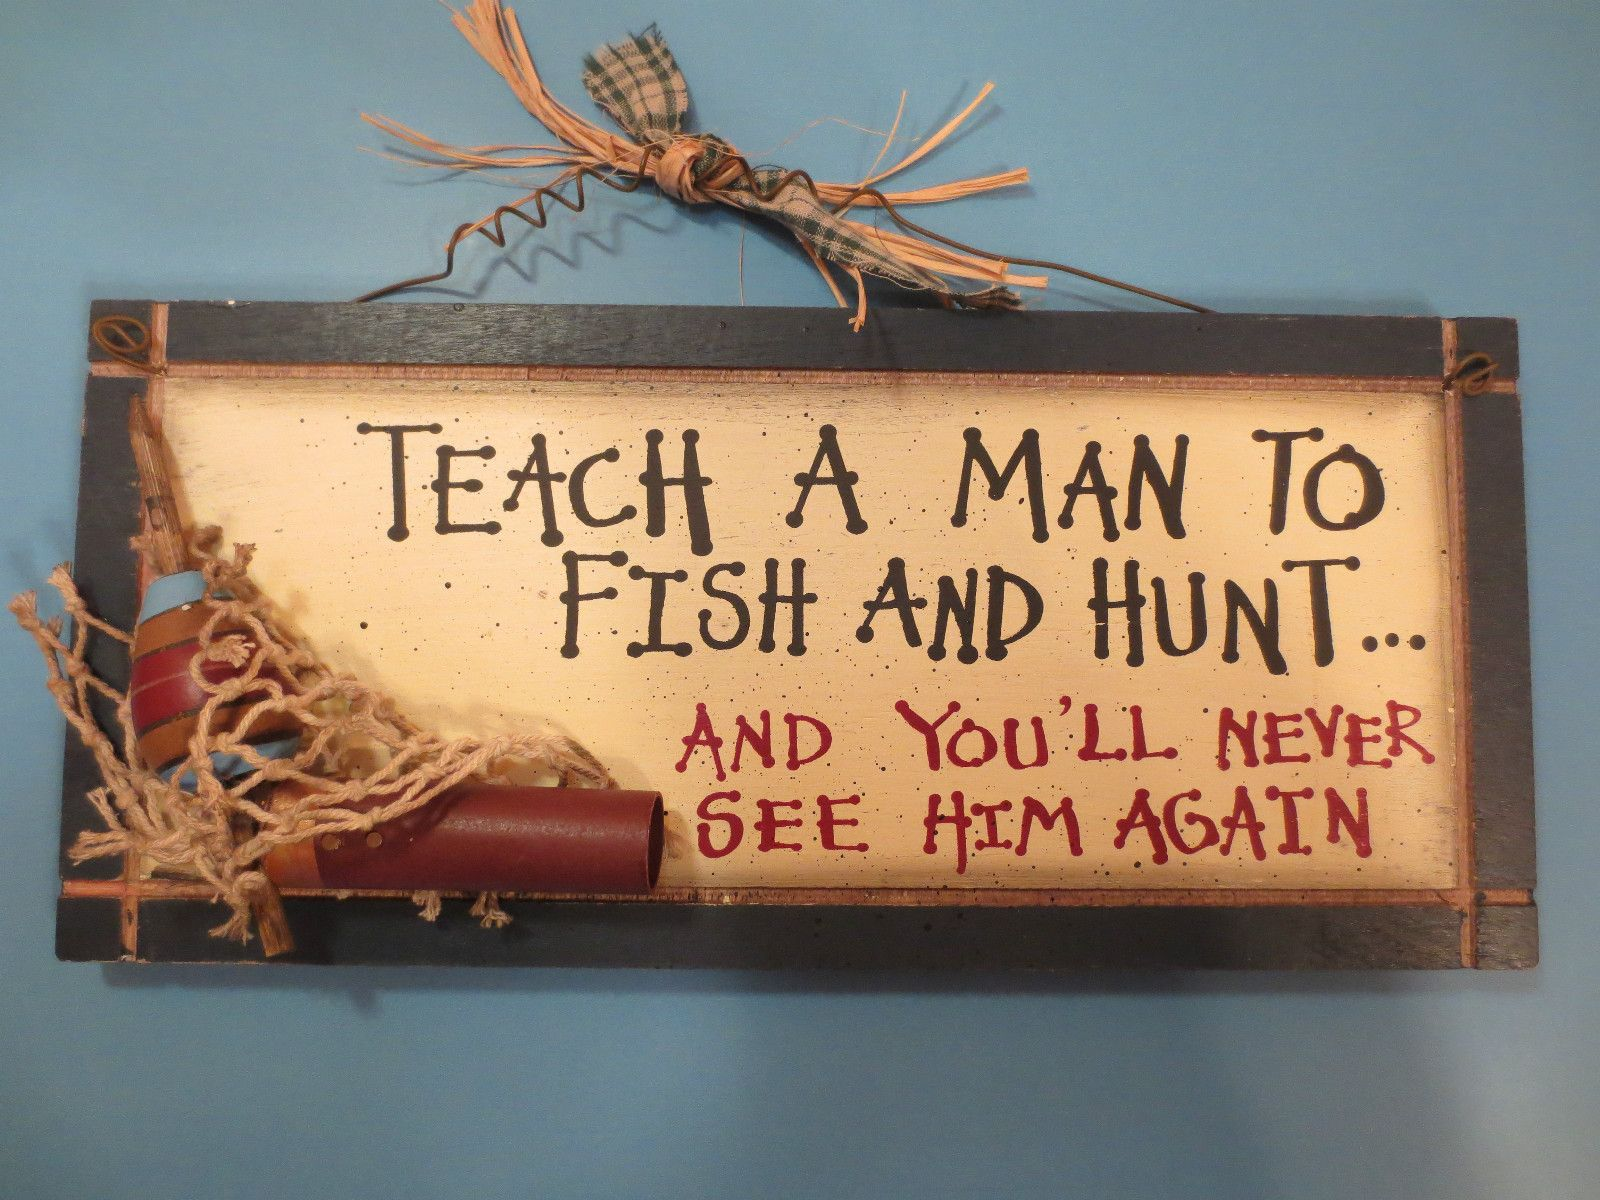 Hunters Man Cave Signs : Teach a man to fish and hunt you'll never see him again